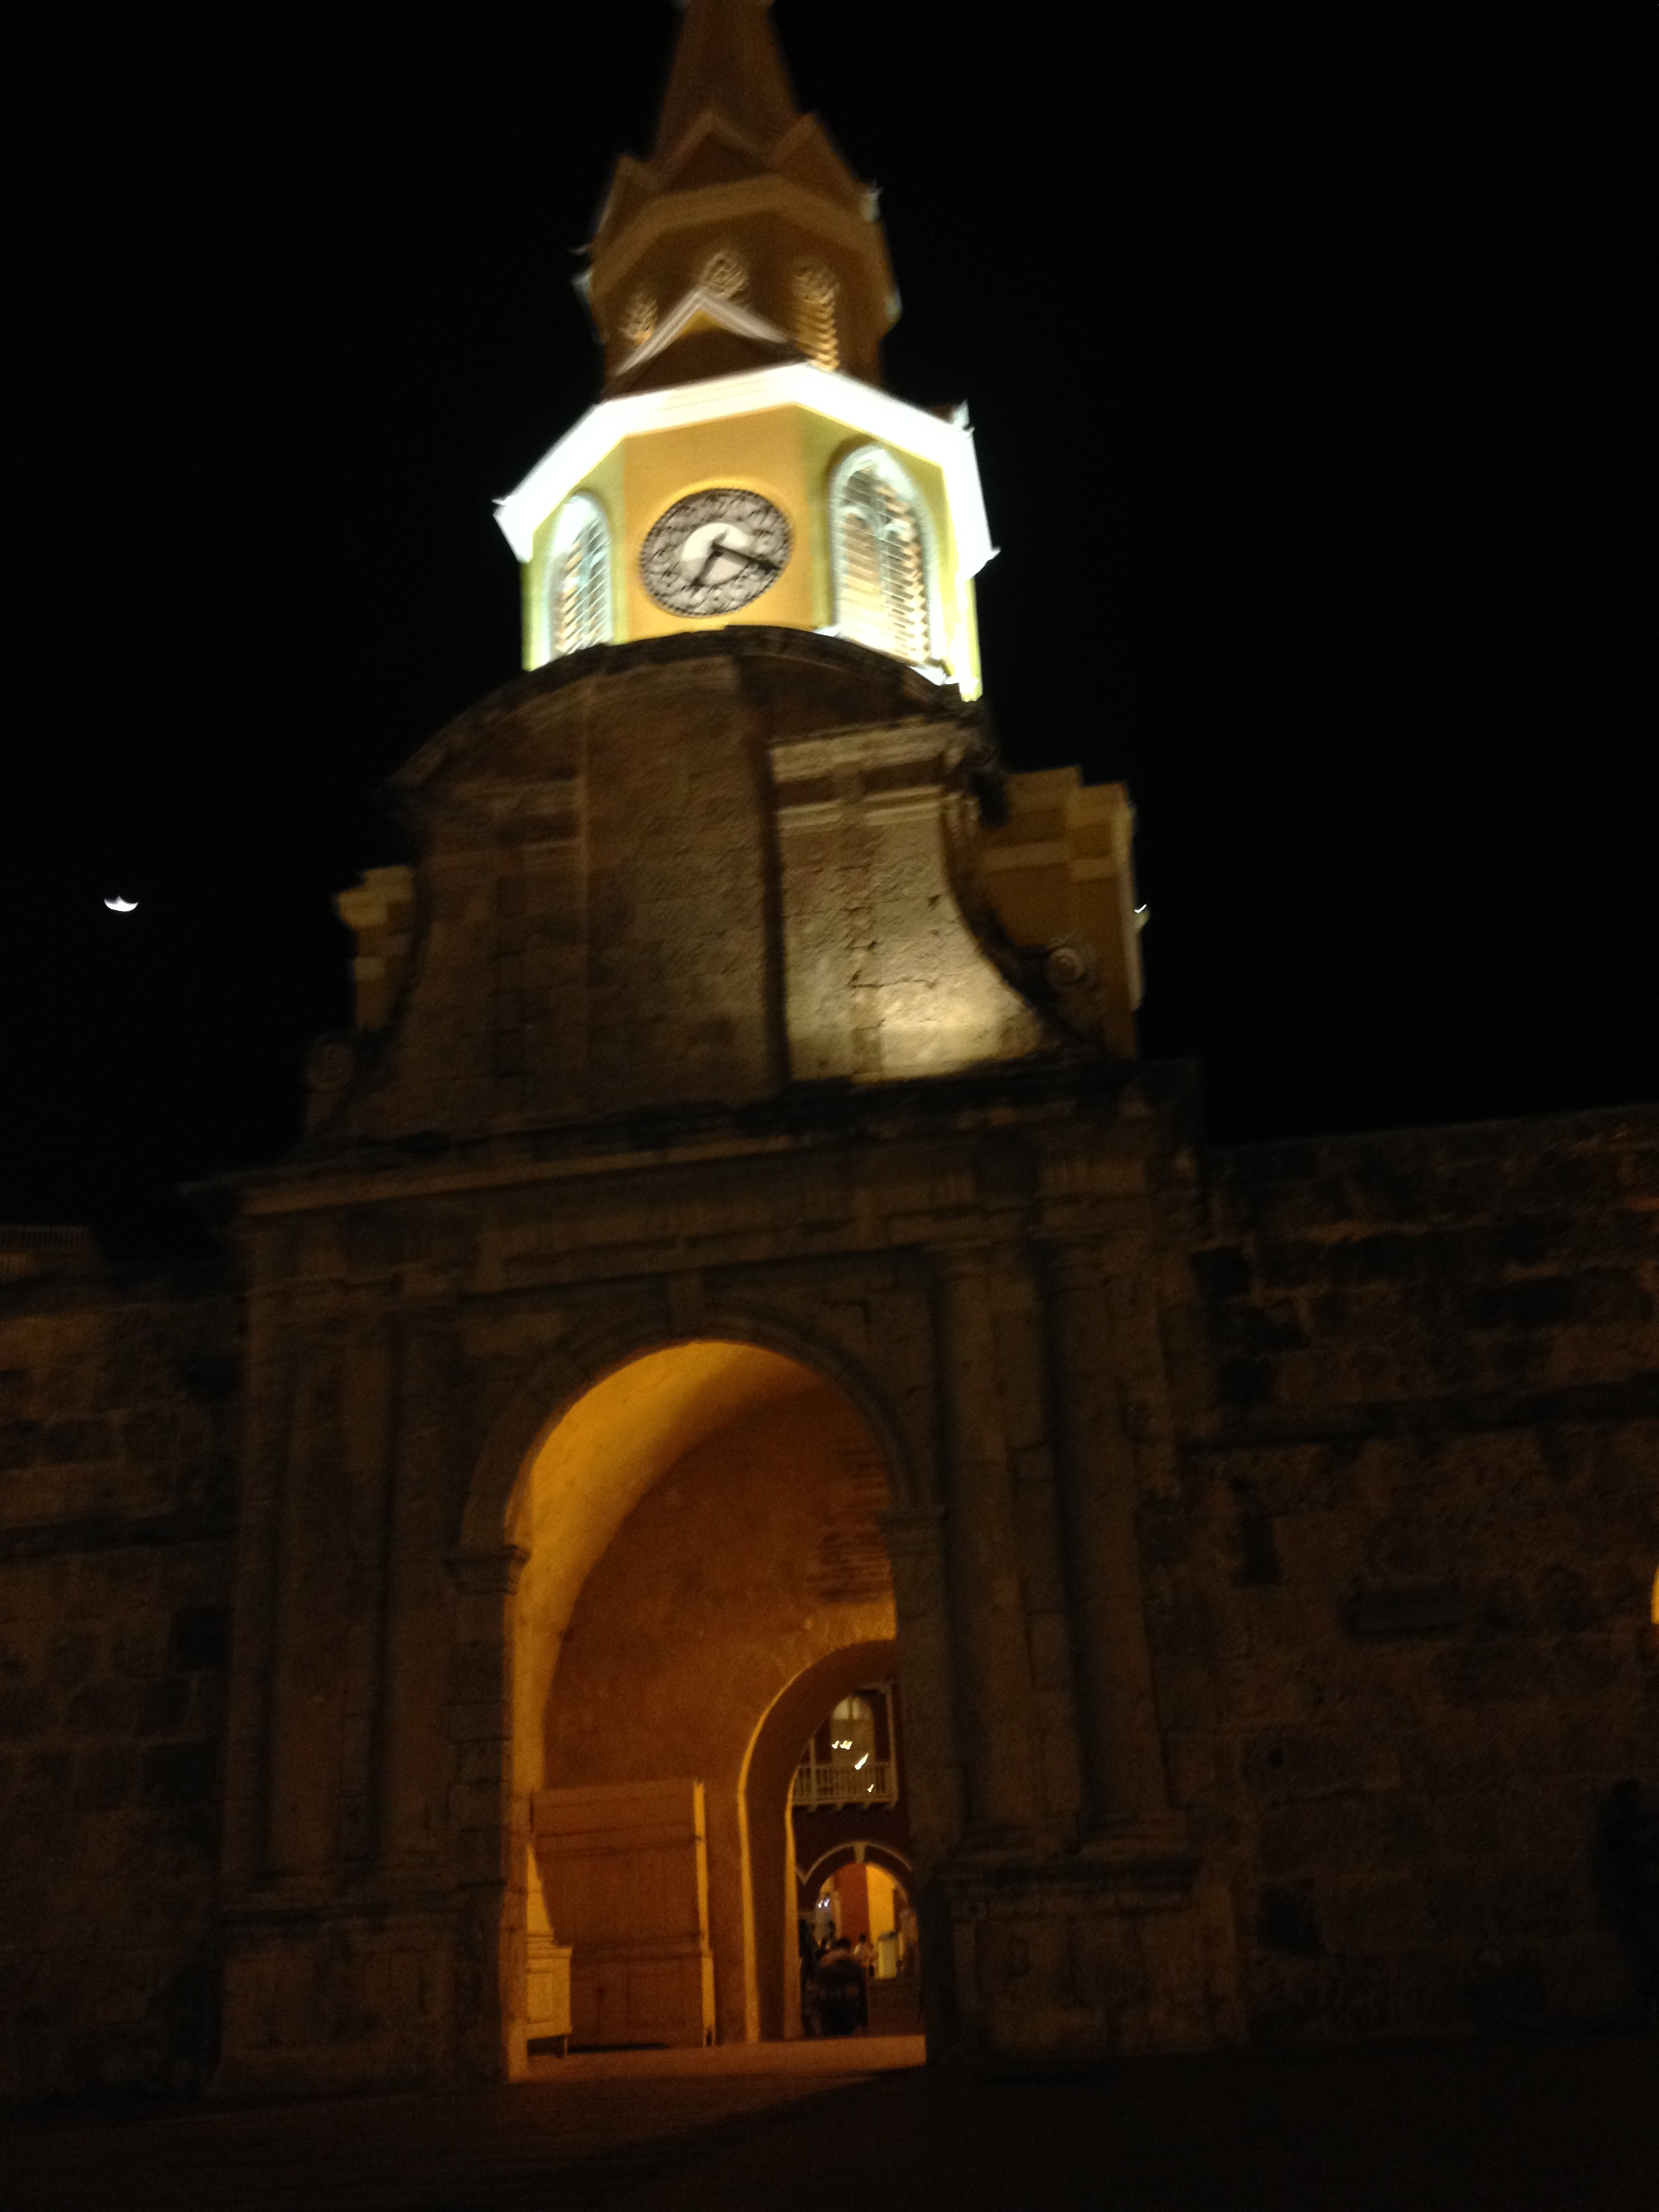 The iconic clock tower of Cartagena.